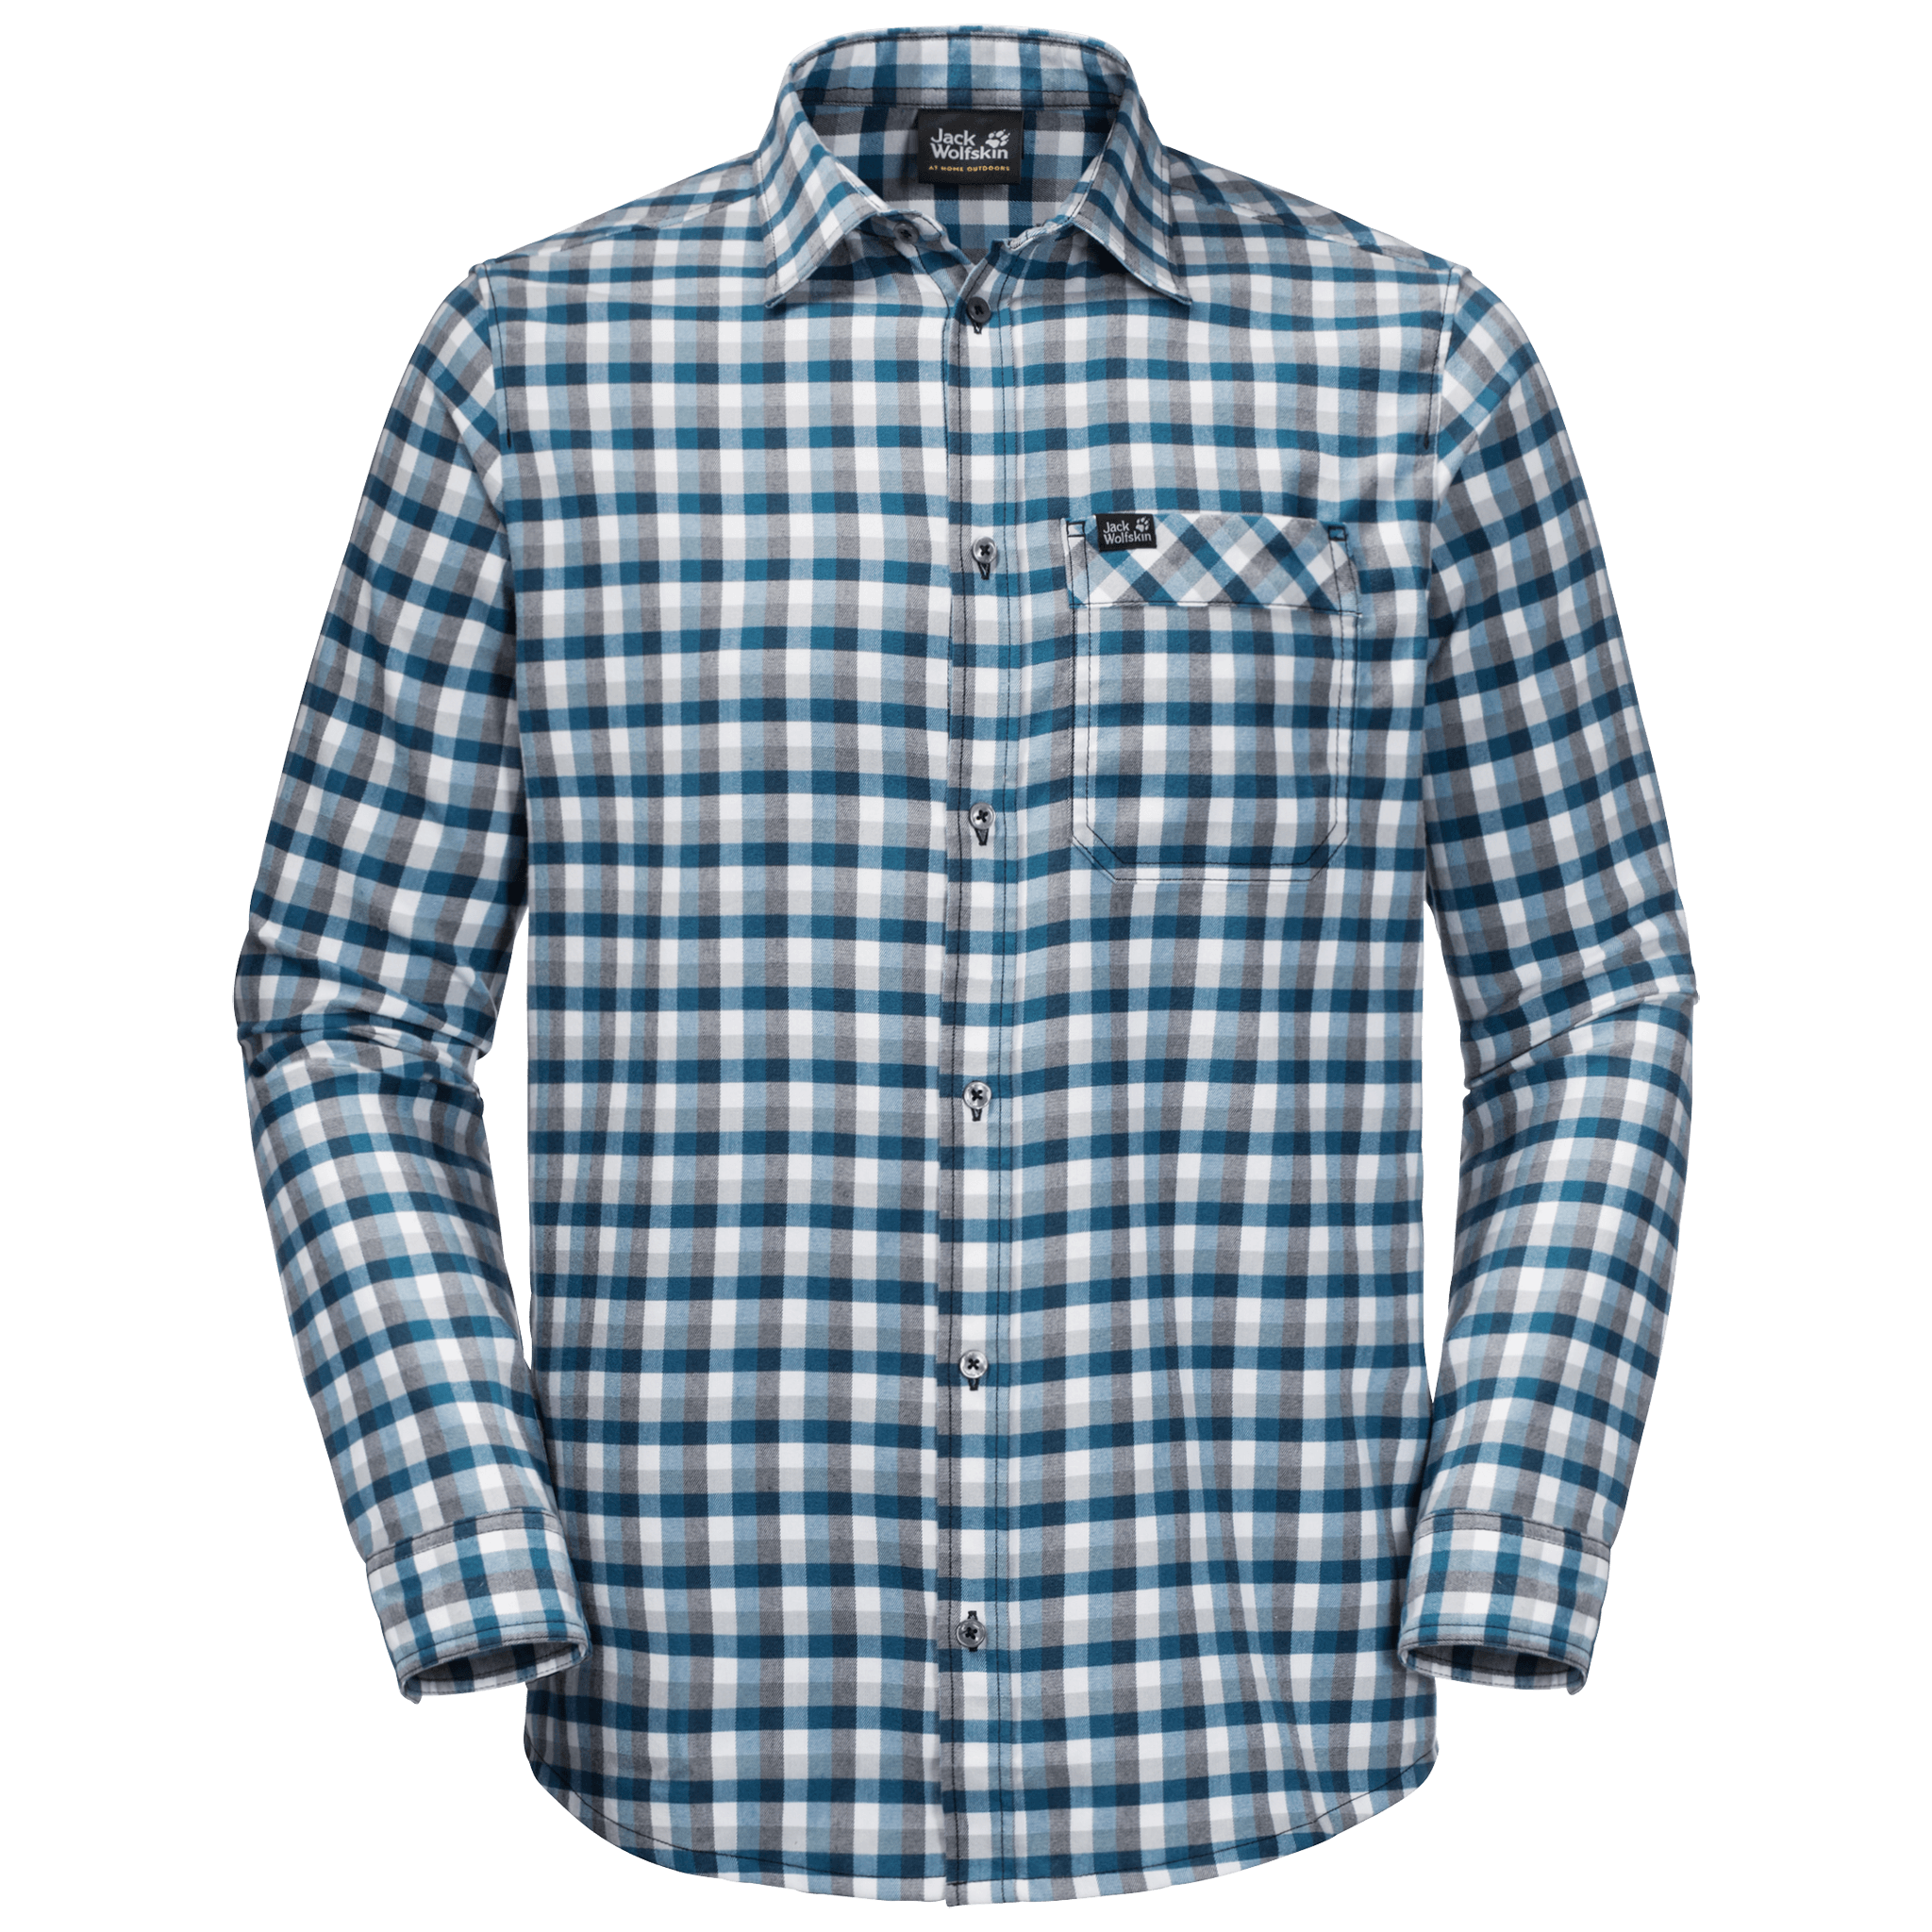 Night Blue Checks Flannel Shirt Men